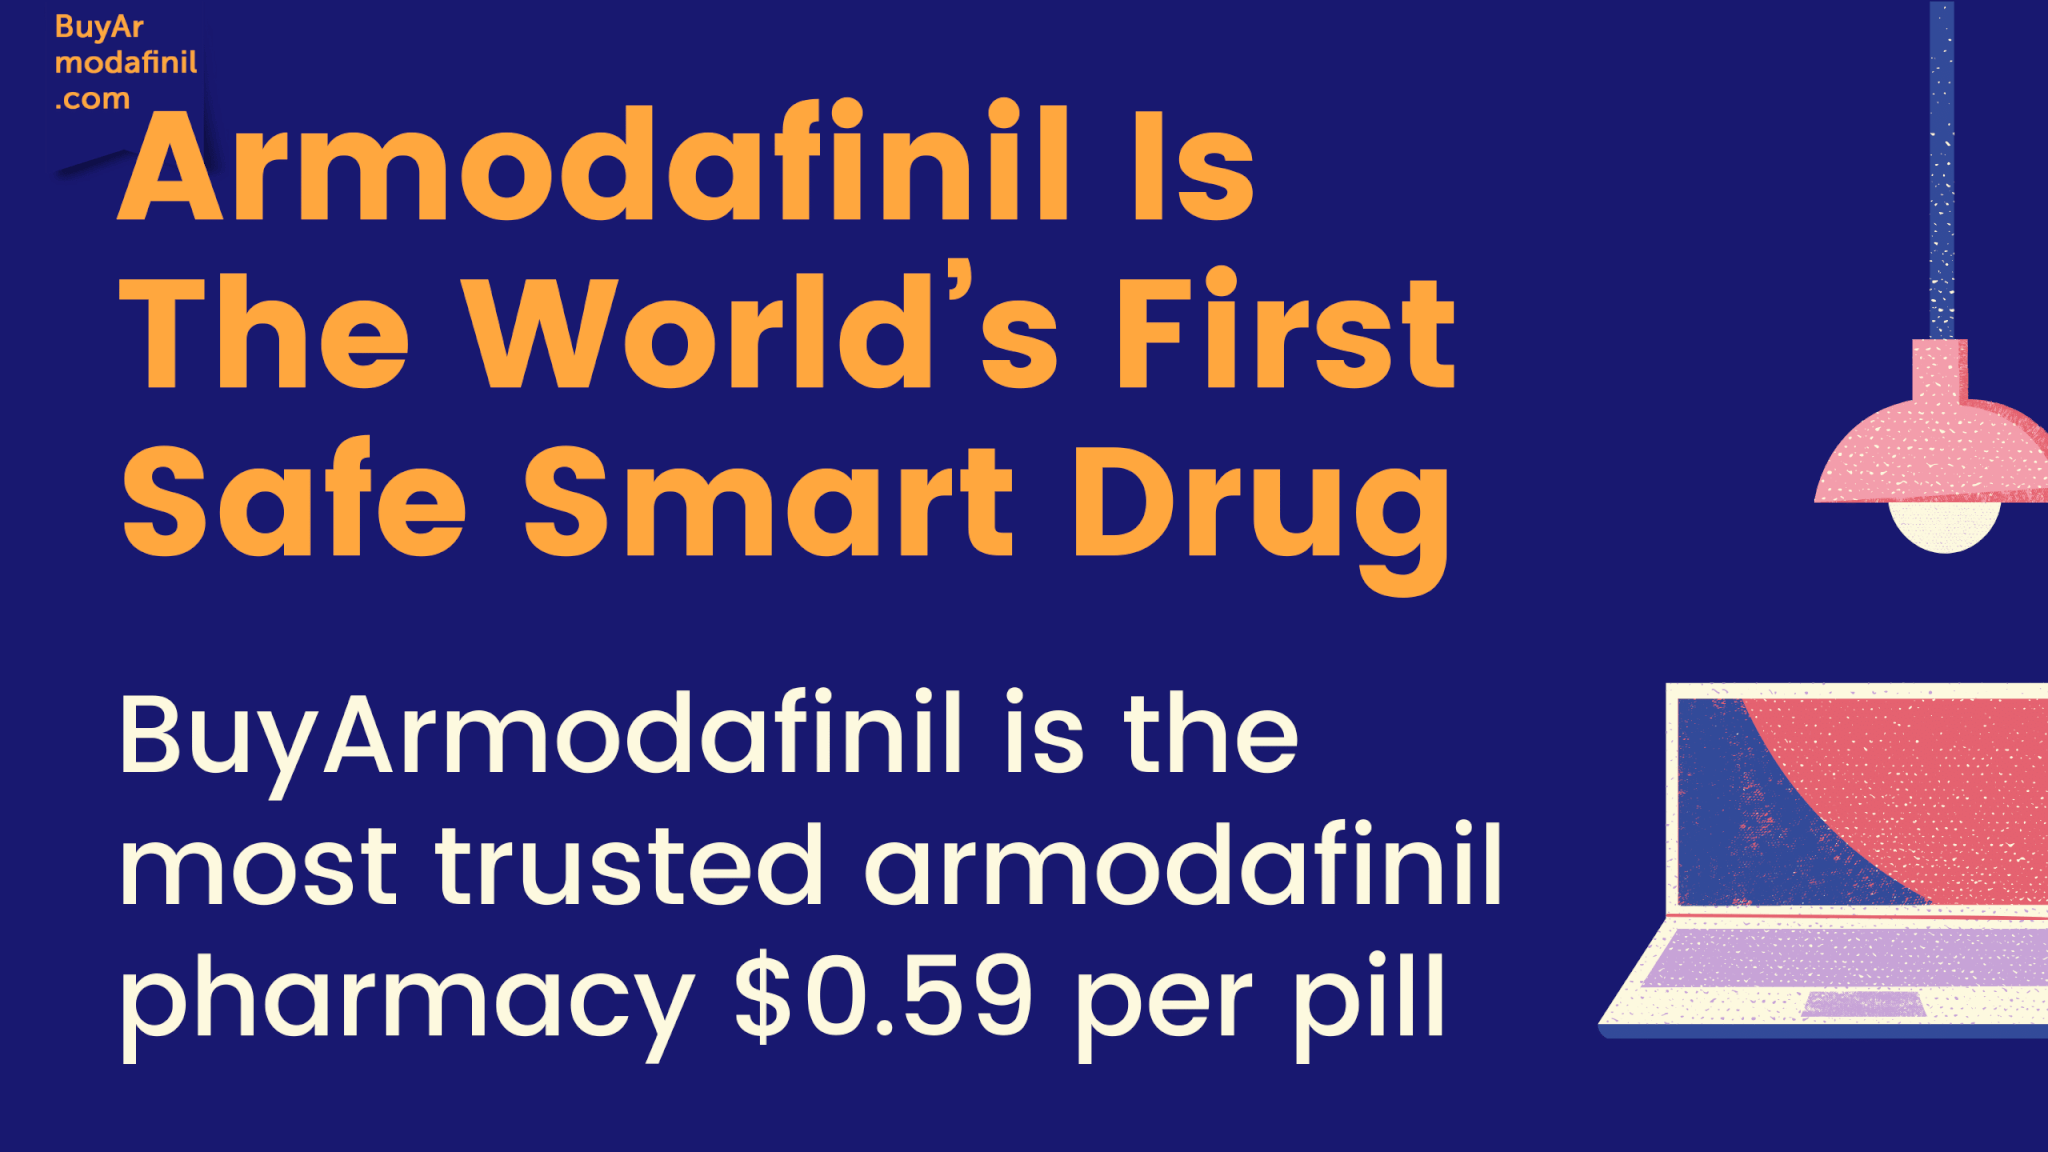 Armodafinil Is the World's First Safe Smart Drug